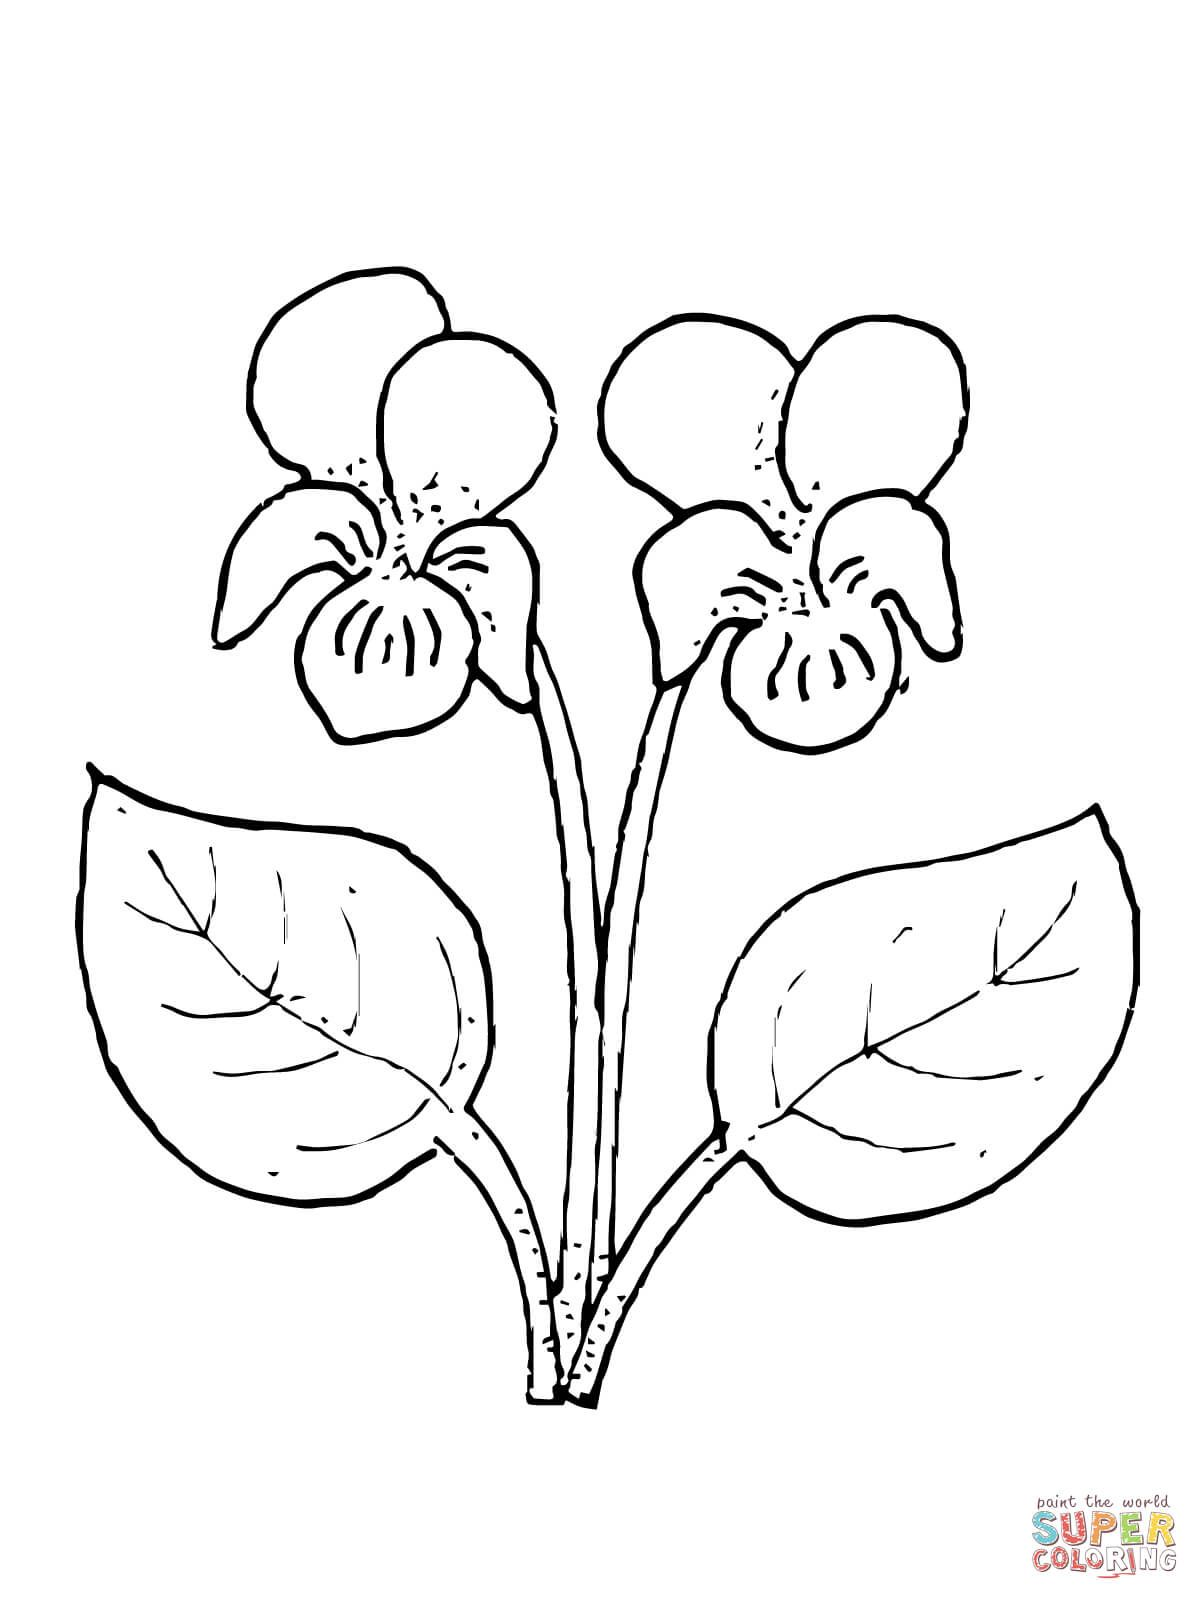 Violet Flower Animal Coloring Pages Horse Coloring Pages Princess Coloring Pages